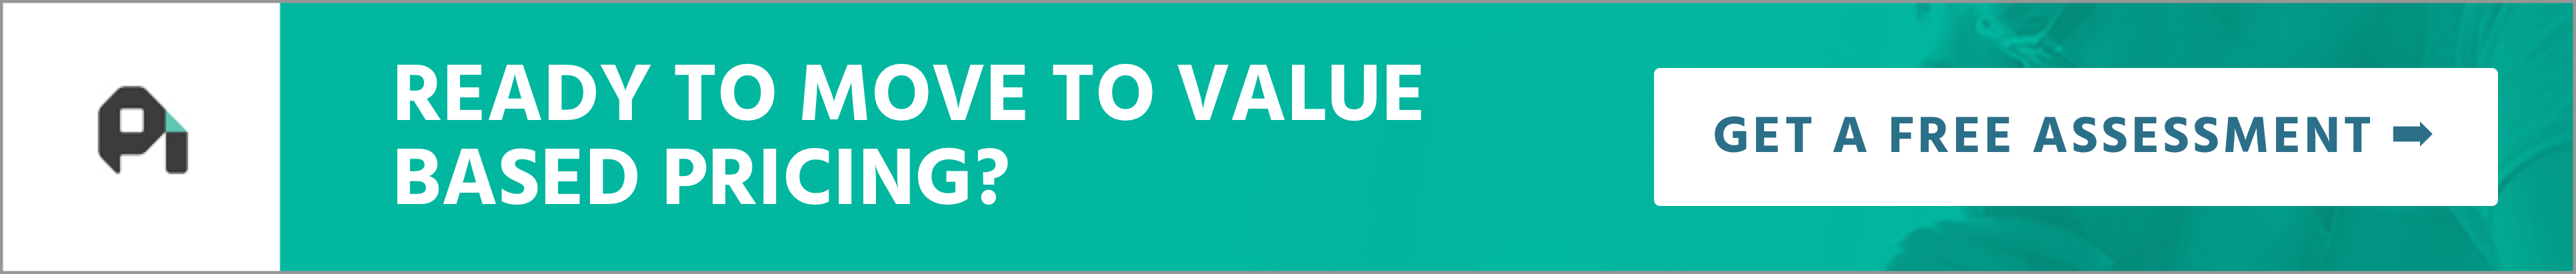 move-to-value-based-pricing-saas-inline.png